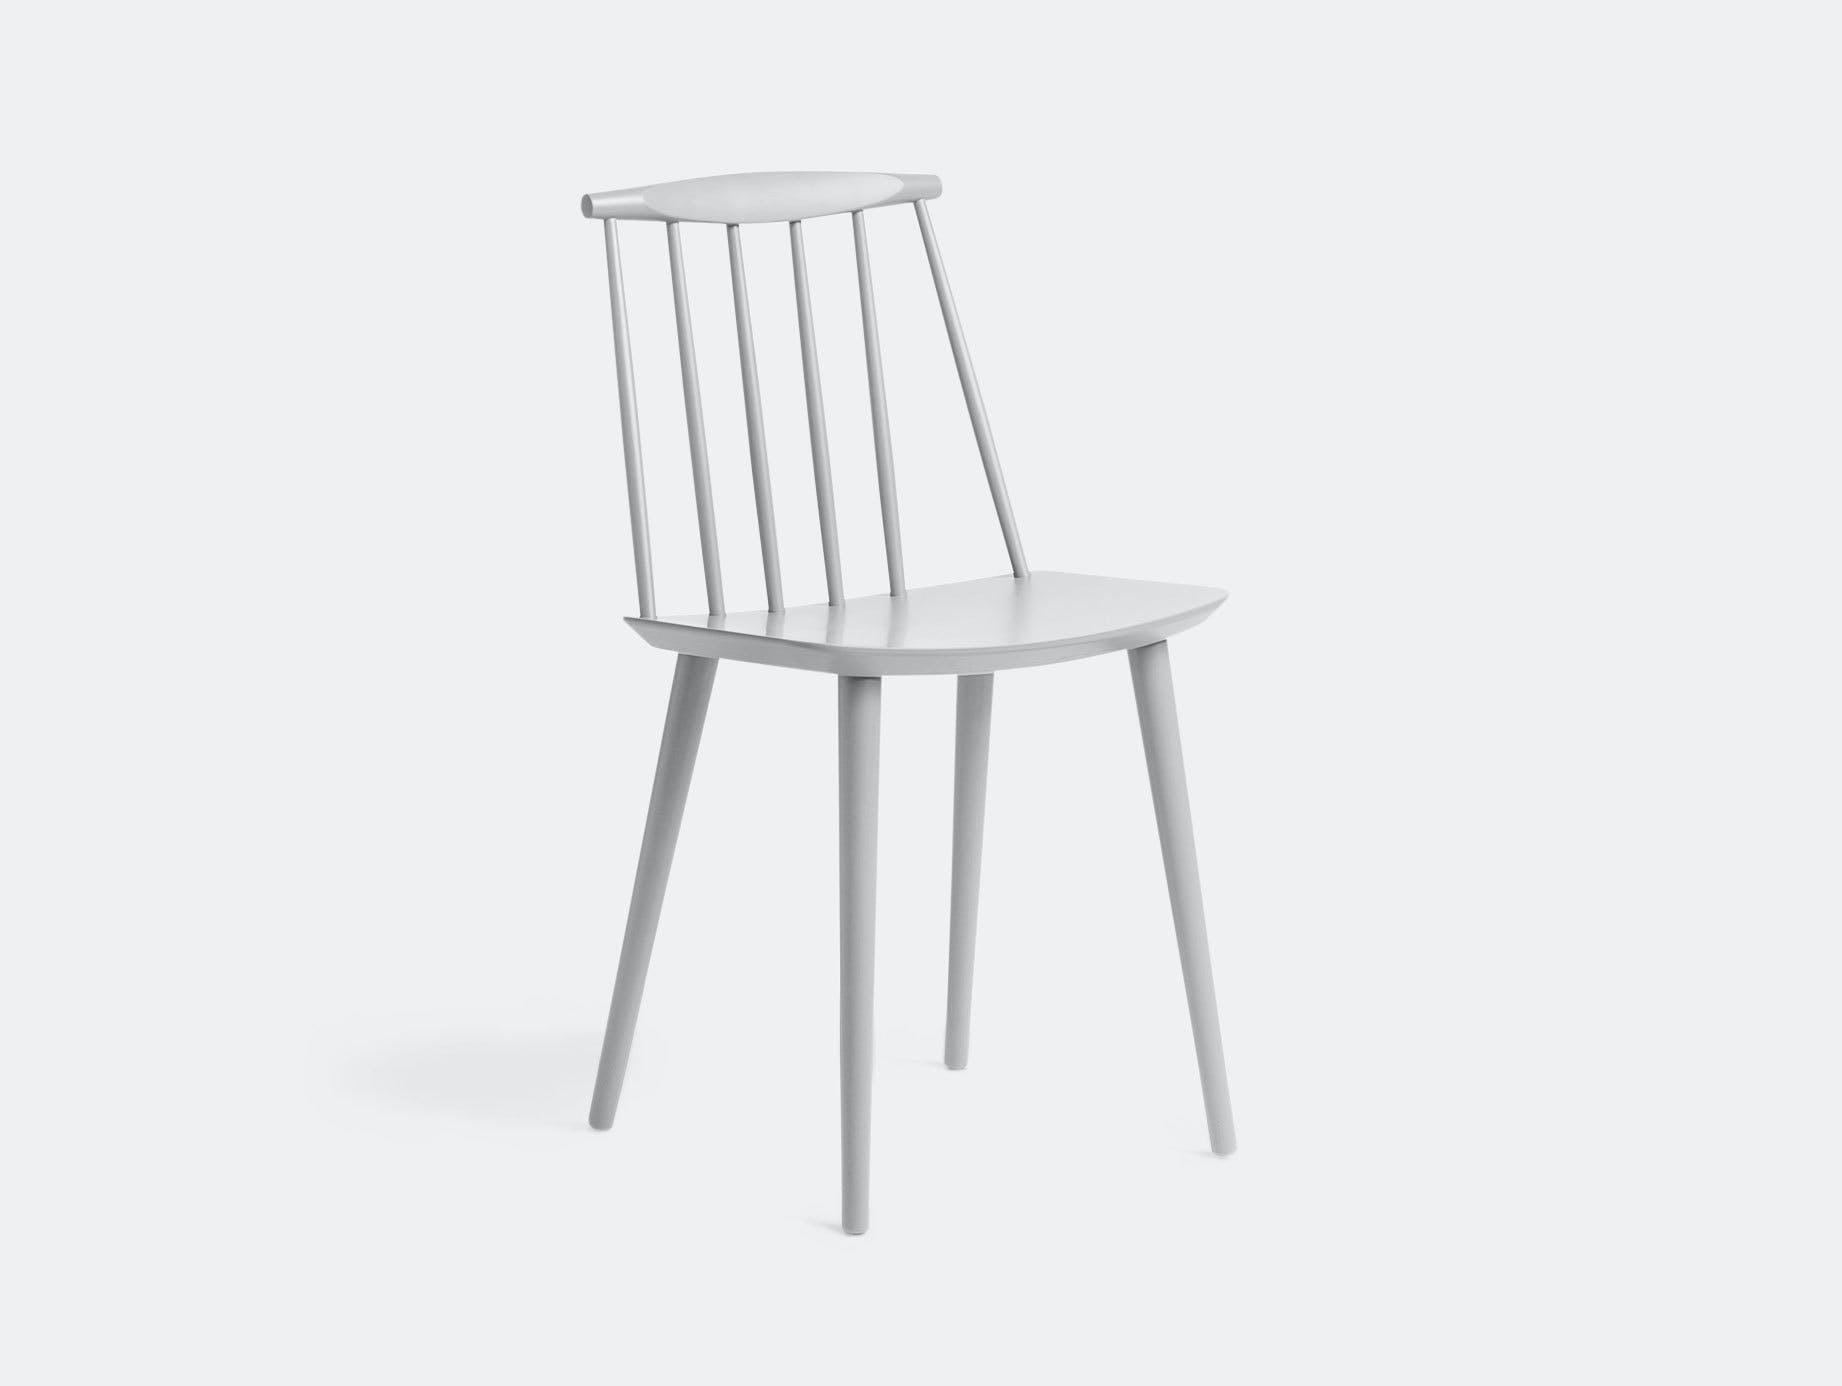 J77 Chair image